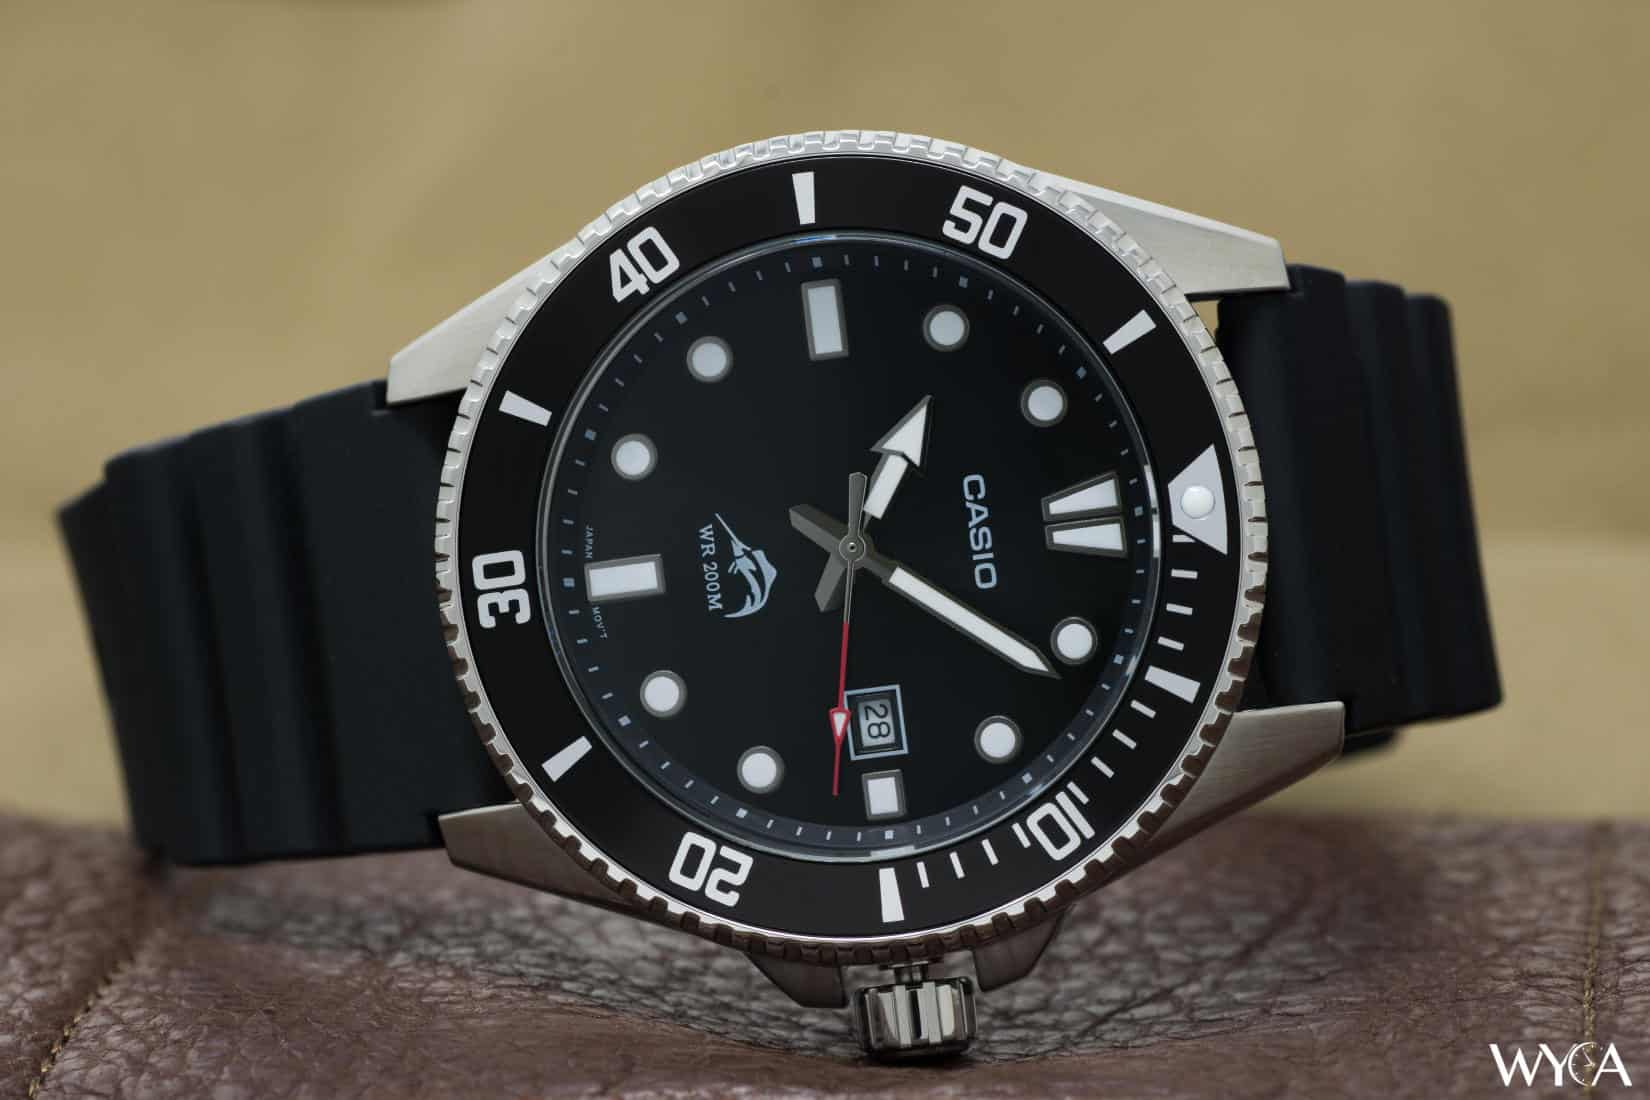 Casio MDV06-1A Affordable Dive Watch